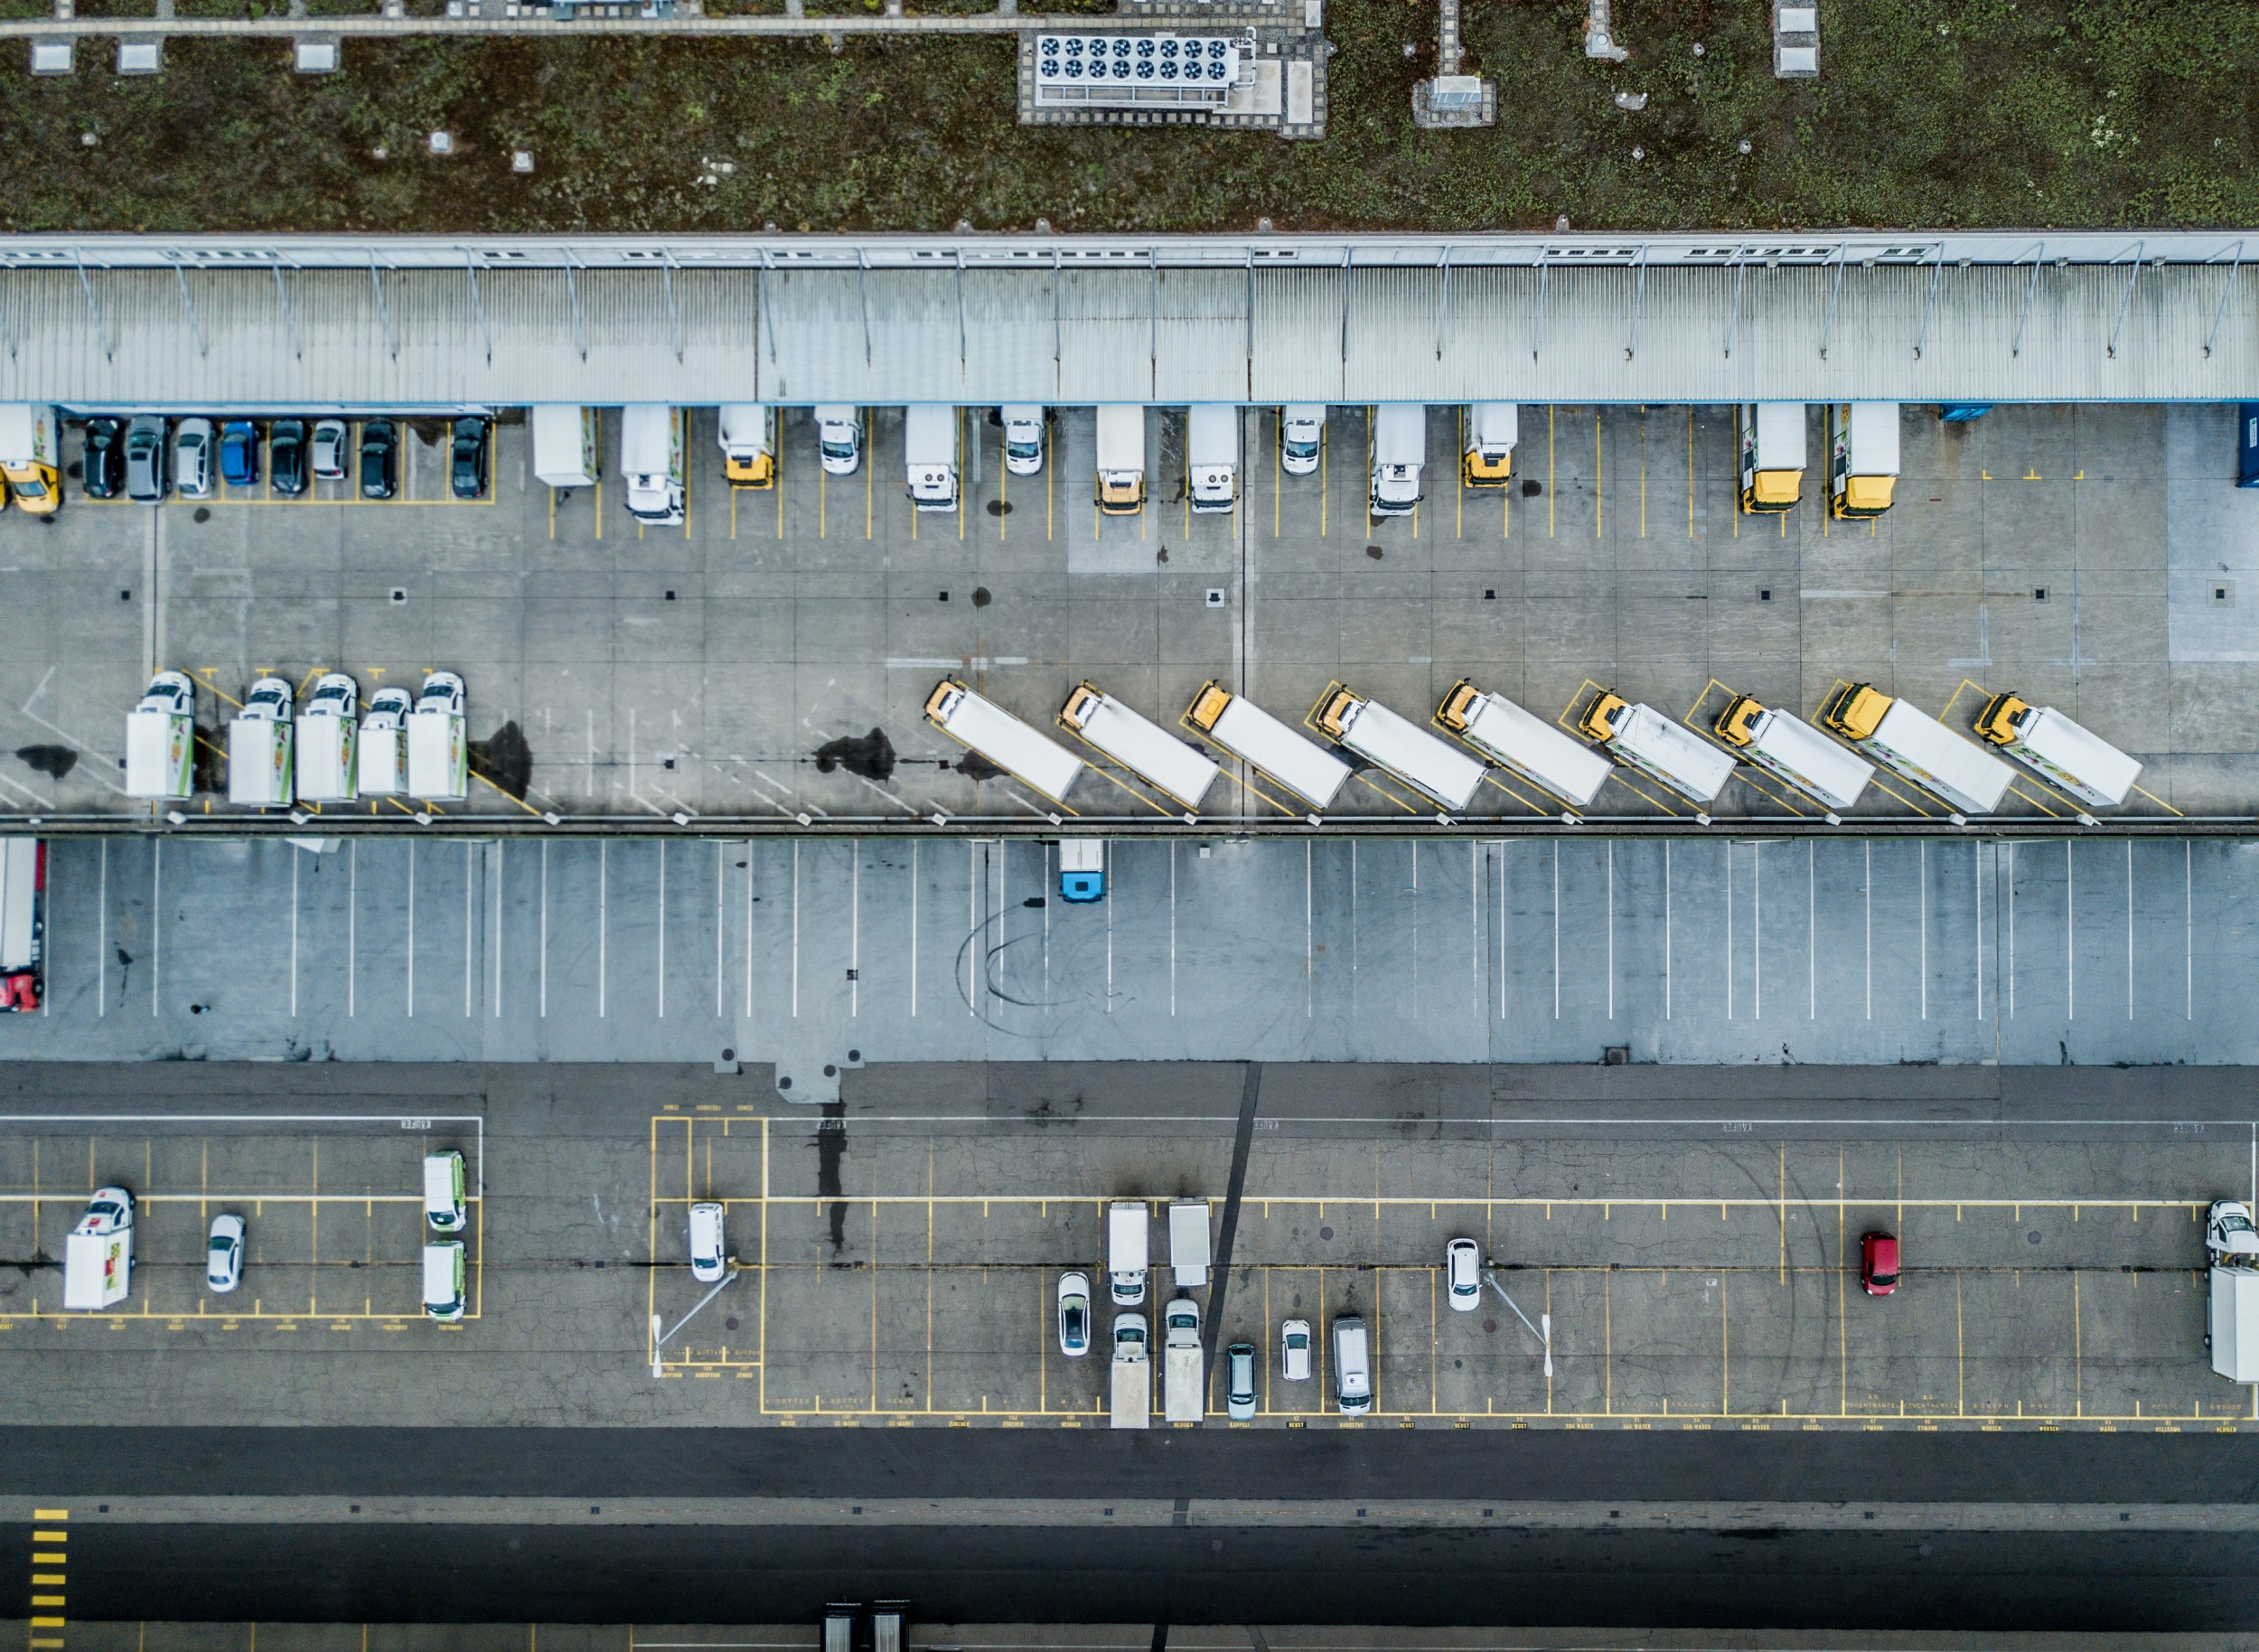 In future, a large proportion of urban freight traffic will continue to be handled by road, with trucks and delivery vans distributing goods from logistics centres.